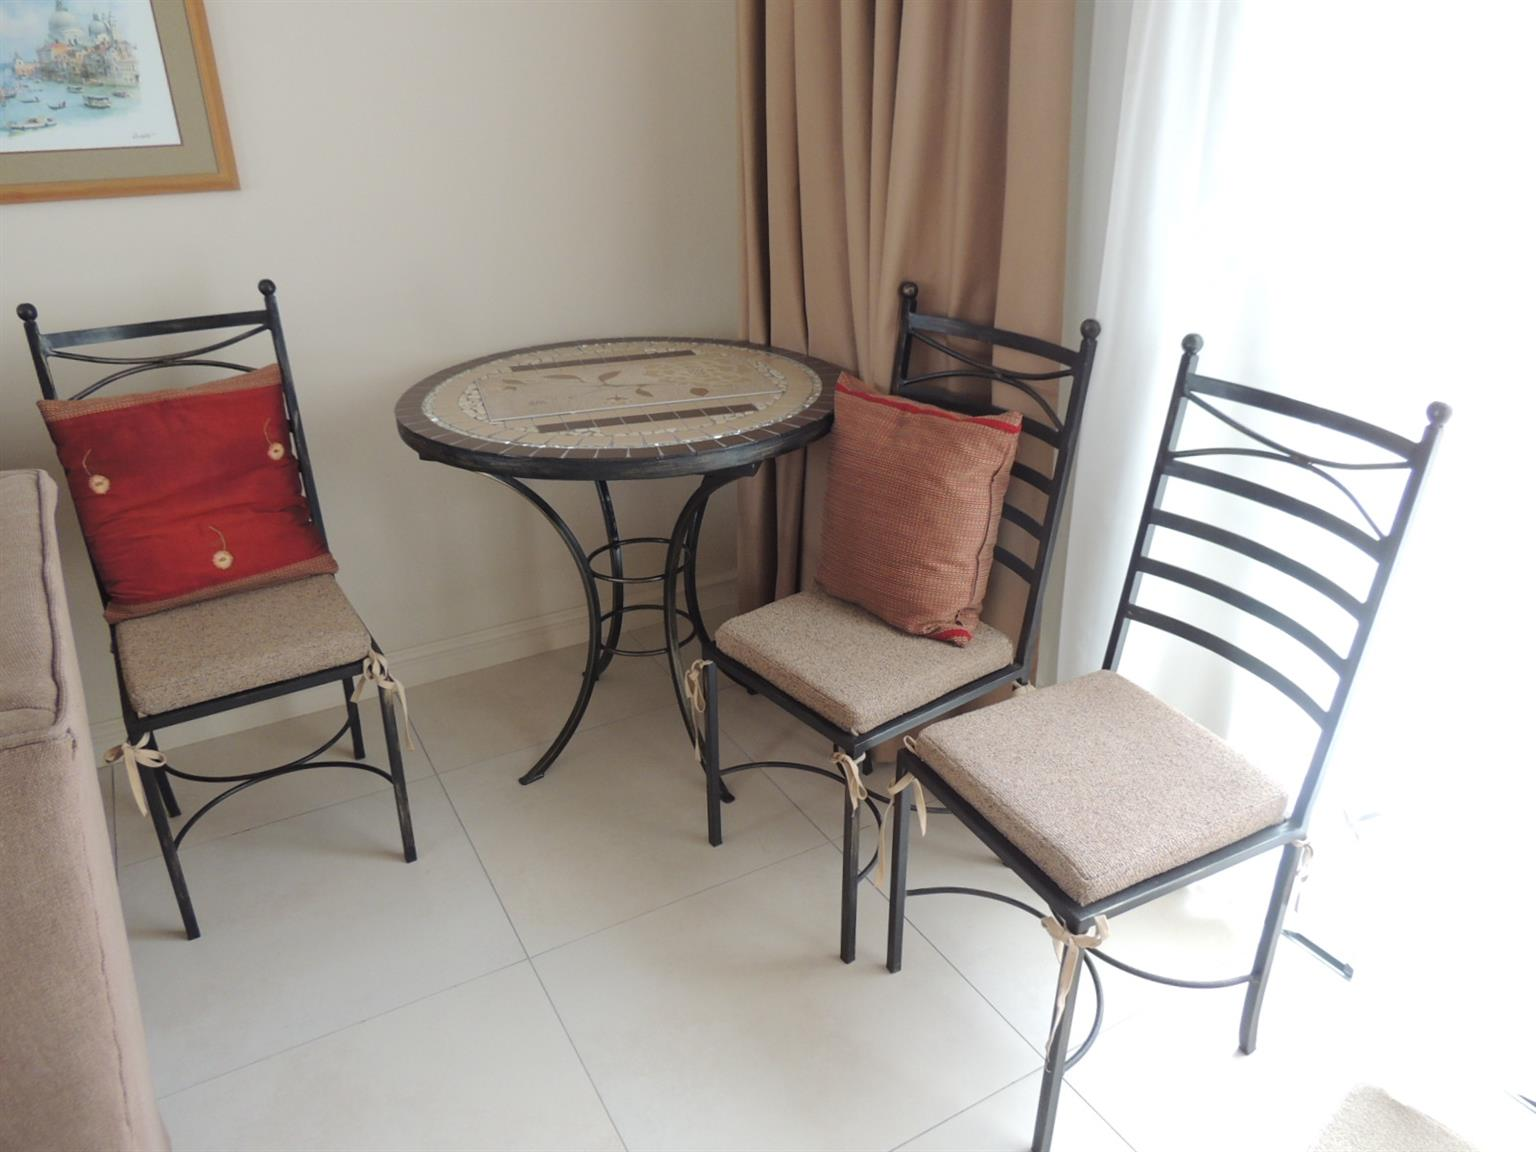 Mosaic table and 3 chairs